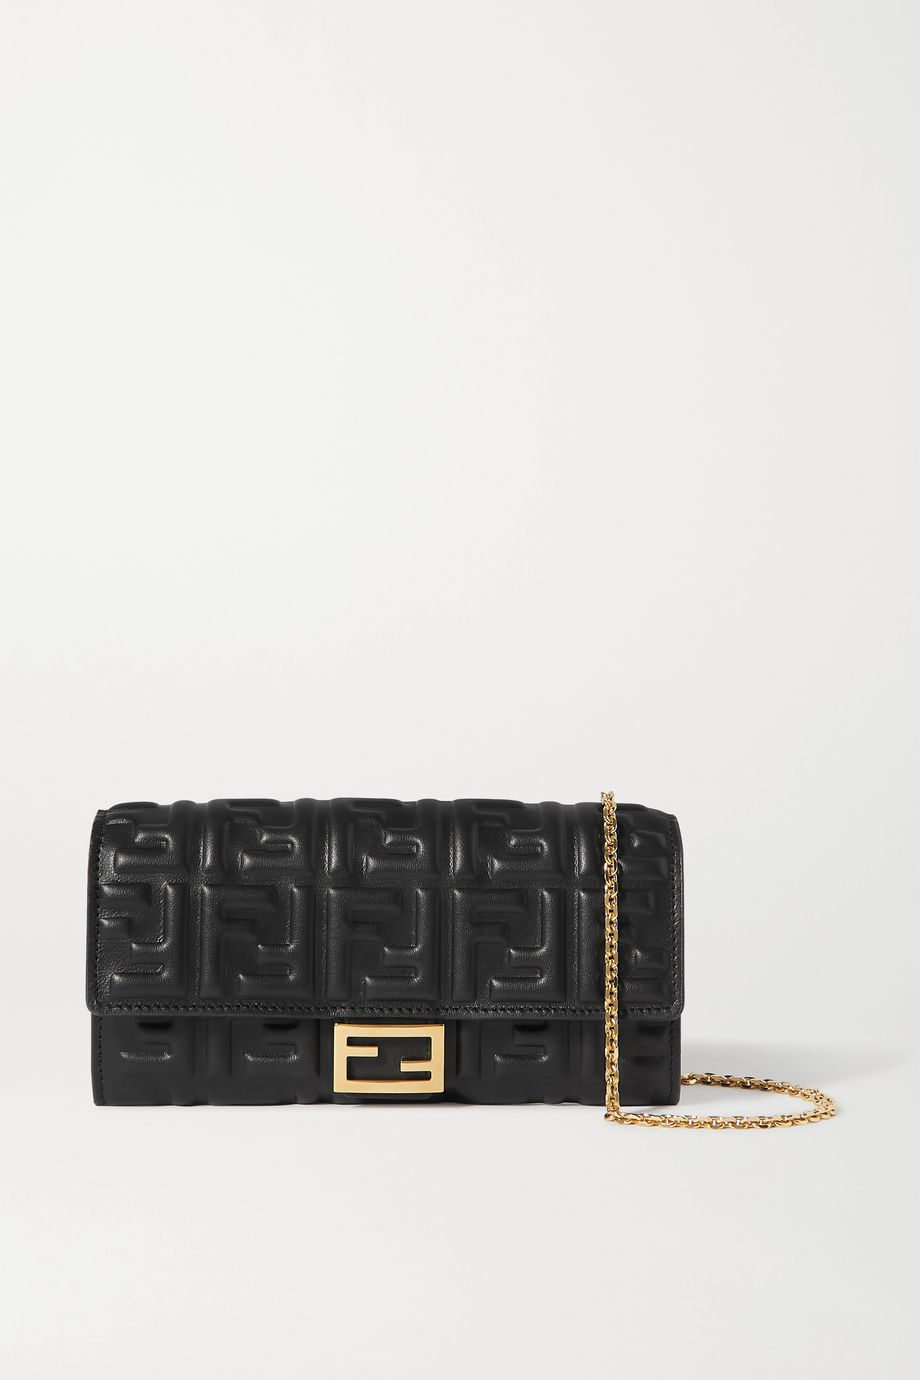 Fendi Embossed leather shoulder bag